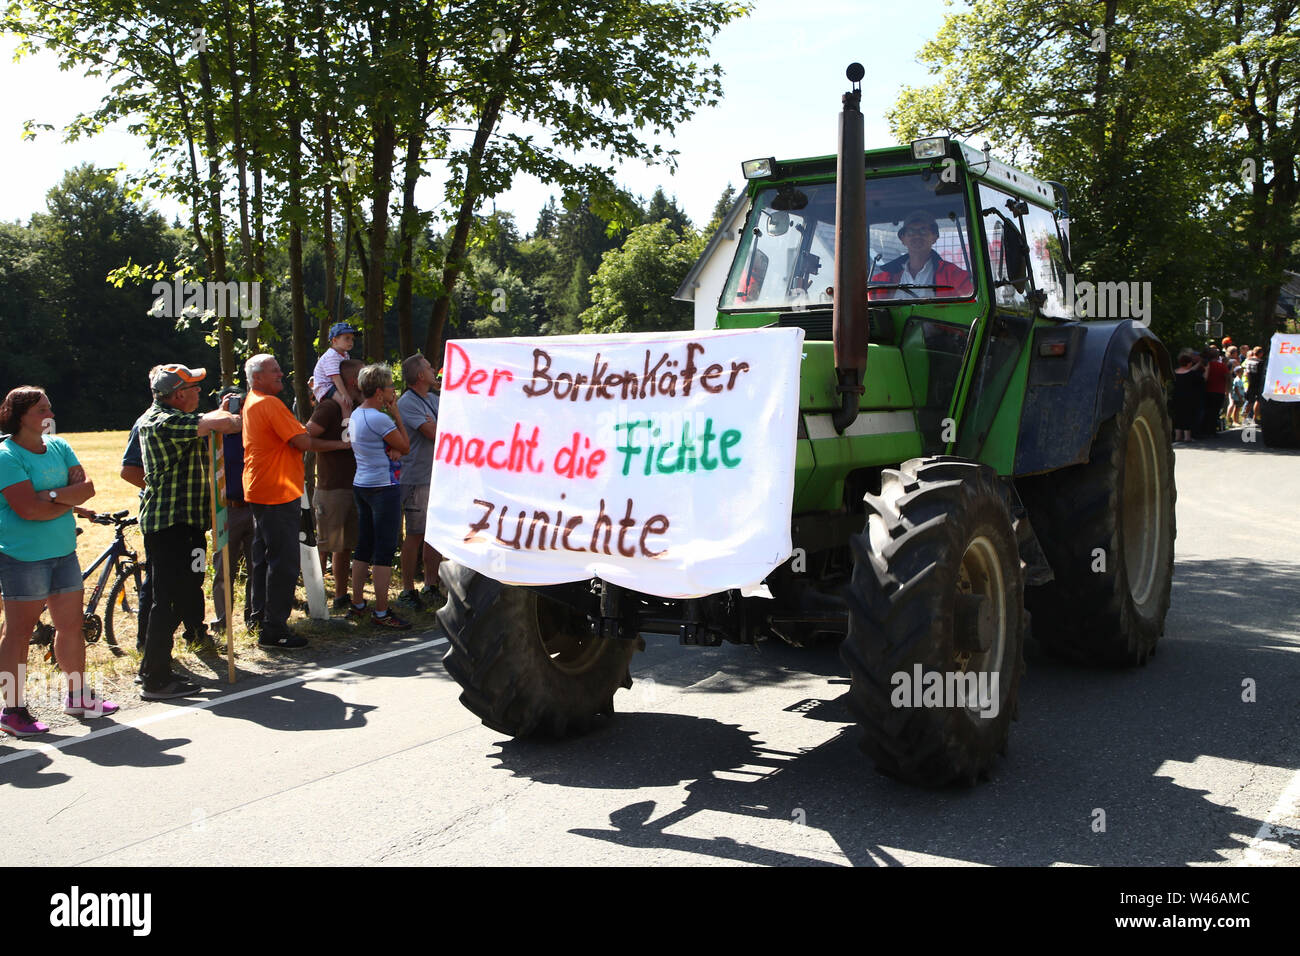 Wurzbach Rodacherbrunn, Germany. 20th July, 2019. A participant of a protest action against forest decommissioning in the Wurzbach area drives with his tractor during a demonstration drive. In the forest areas around Rodacherbrunn, a 1400 hectare spruce forest is to be abandoned for forestry purposes. The organizers of the action fear that this would sacrifice the forest to the bark beetle. The poster says: The bark beetle destroys the spruce. Credit: Bodo Schackow/dpa-Zentralbild/dpa/Alamy Live News - Stock Image